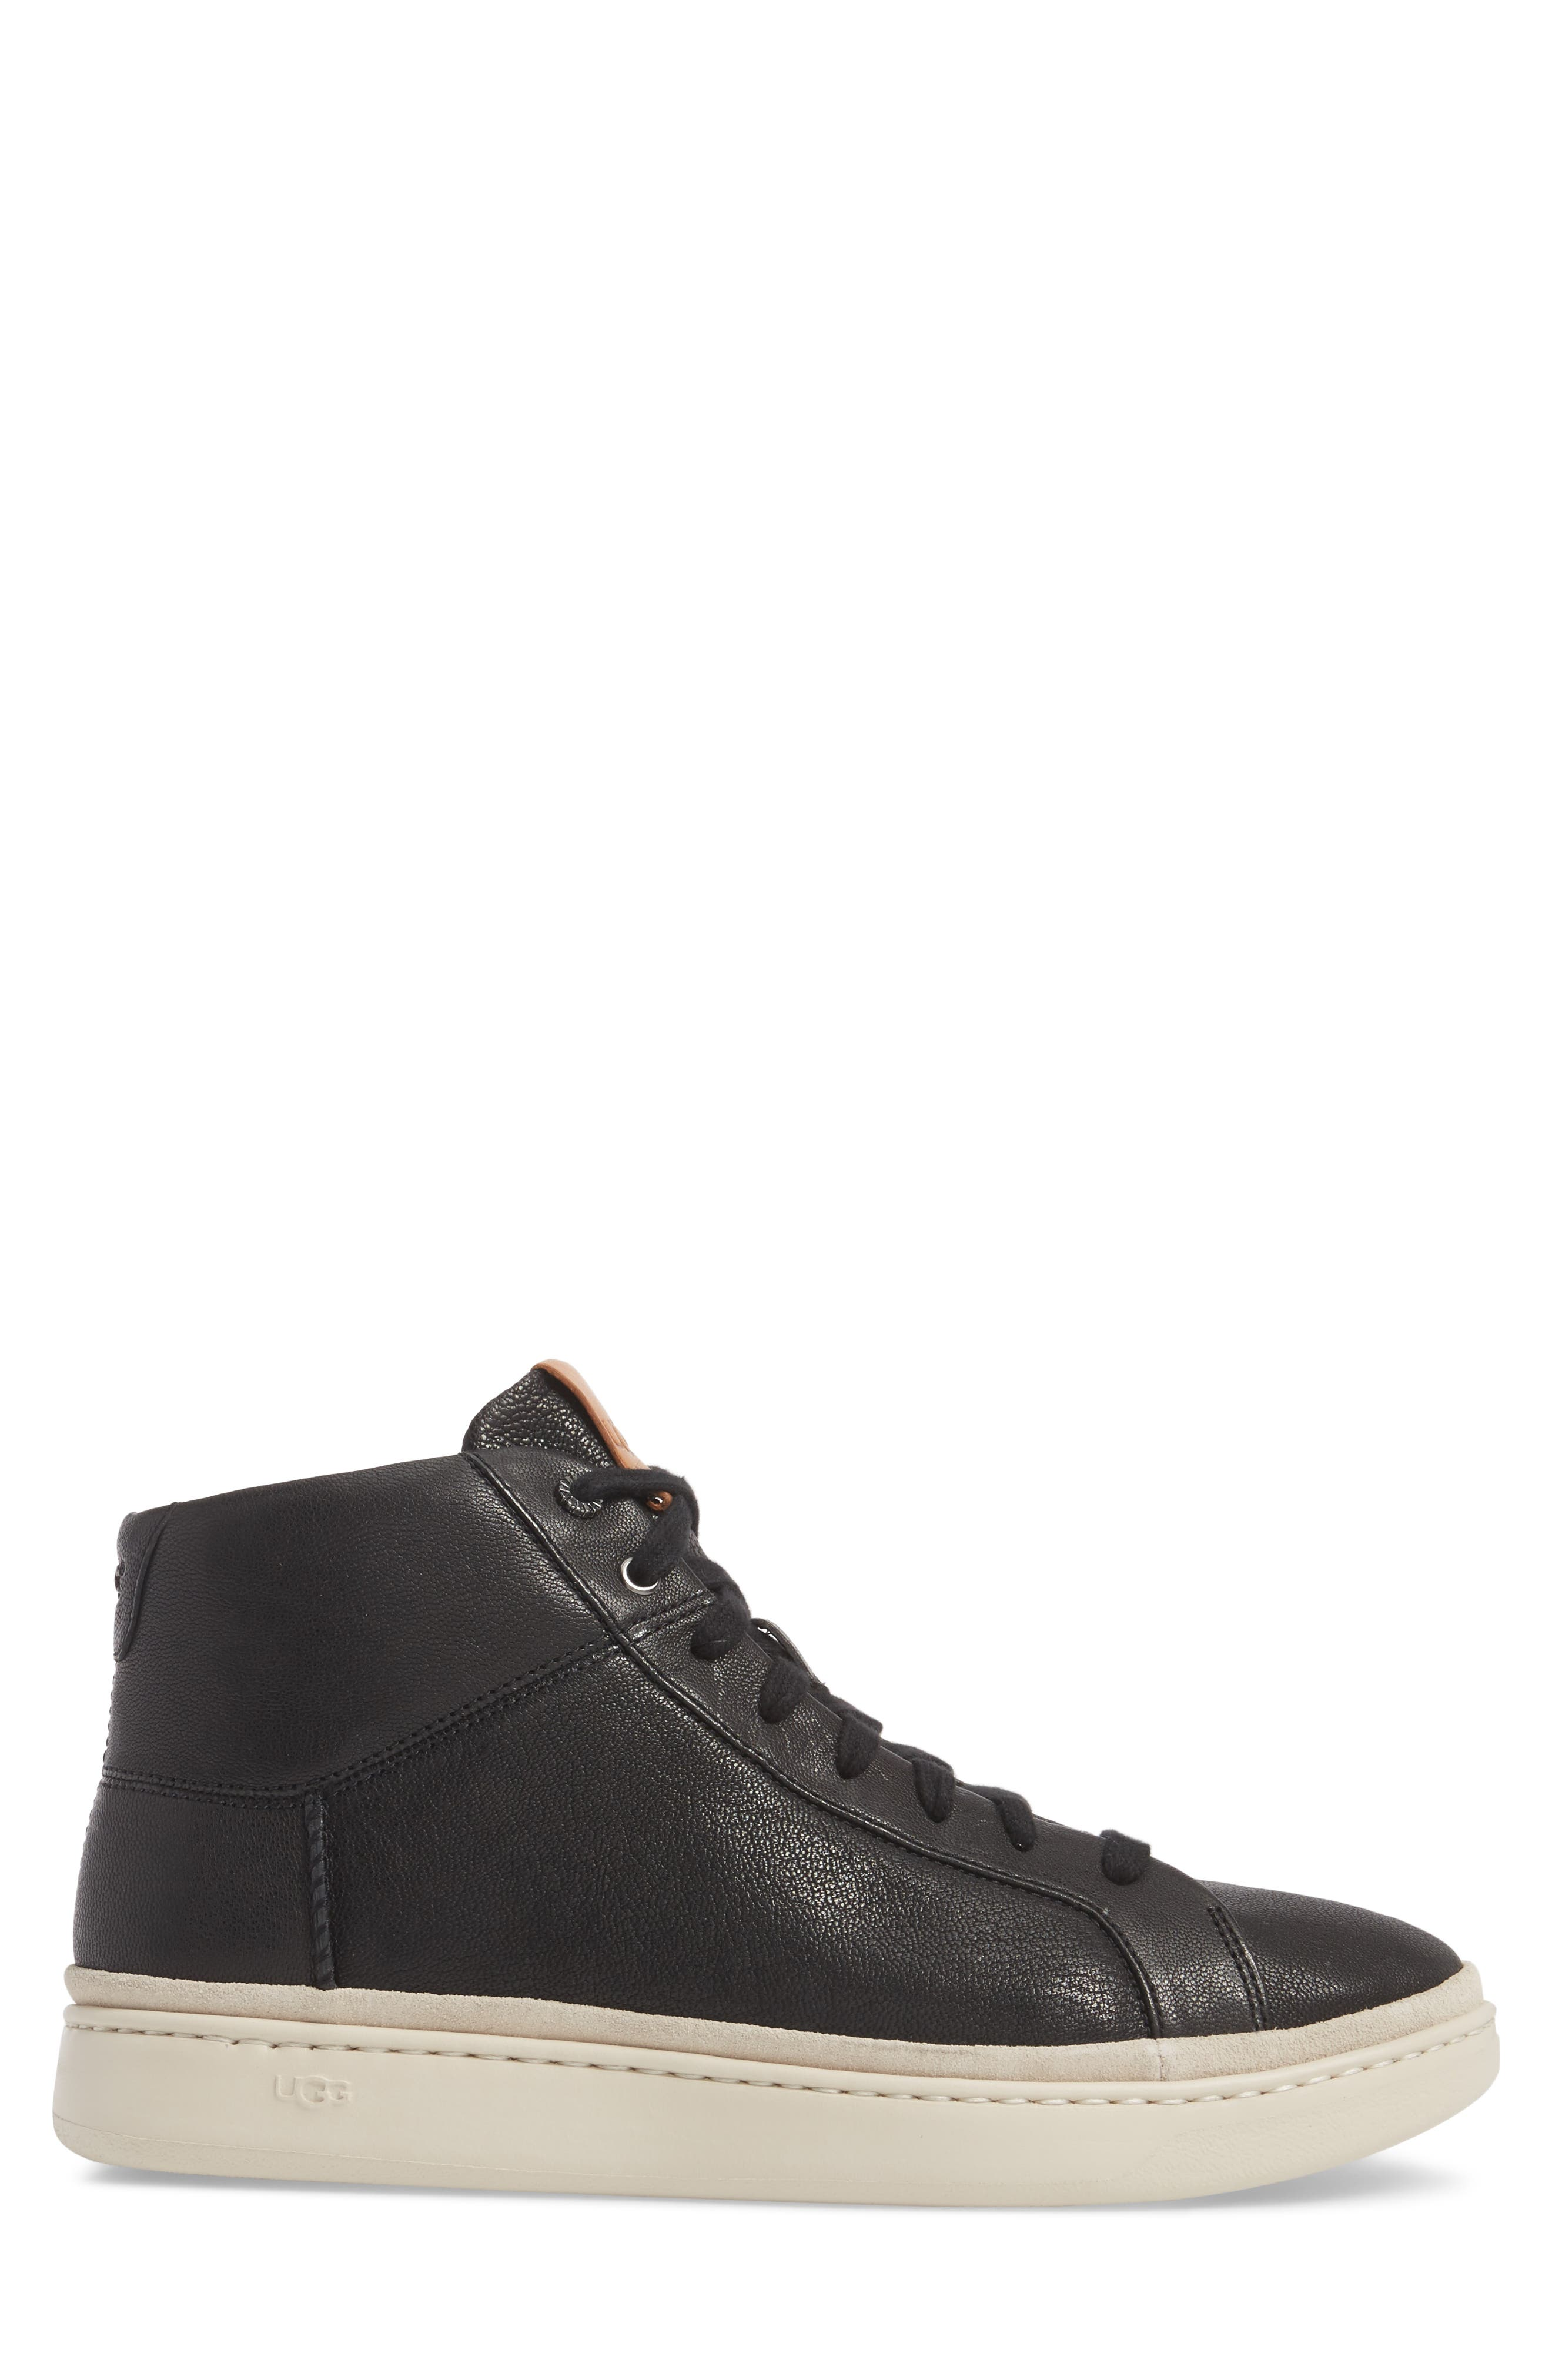 UGG<SUP>®</SUP>, Cali High Top Sneaker, Alternate thumbnail 3, color, BLACK LEATHER